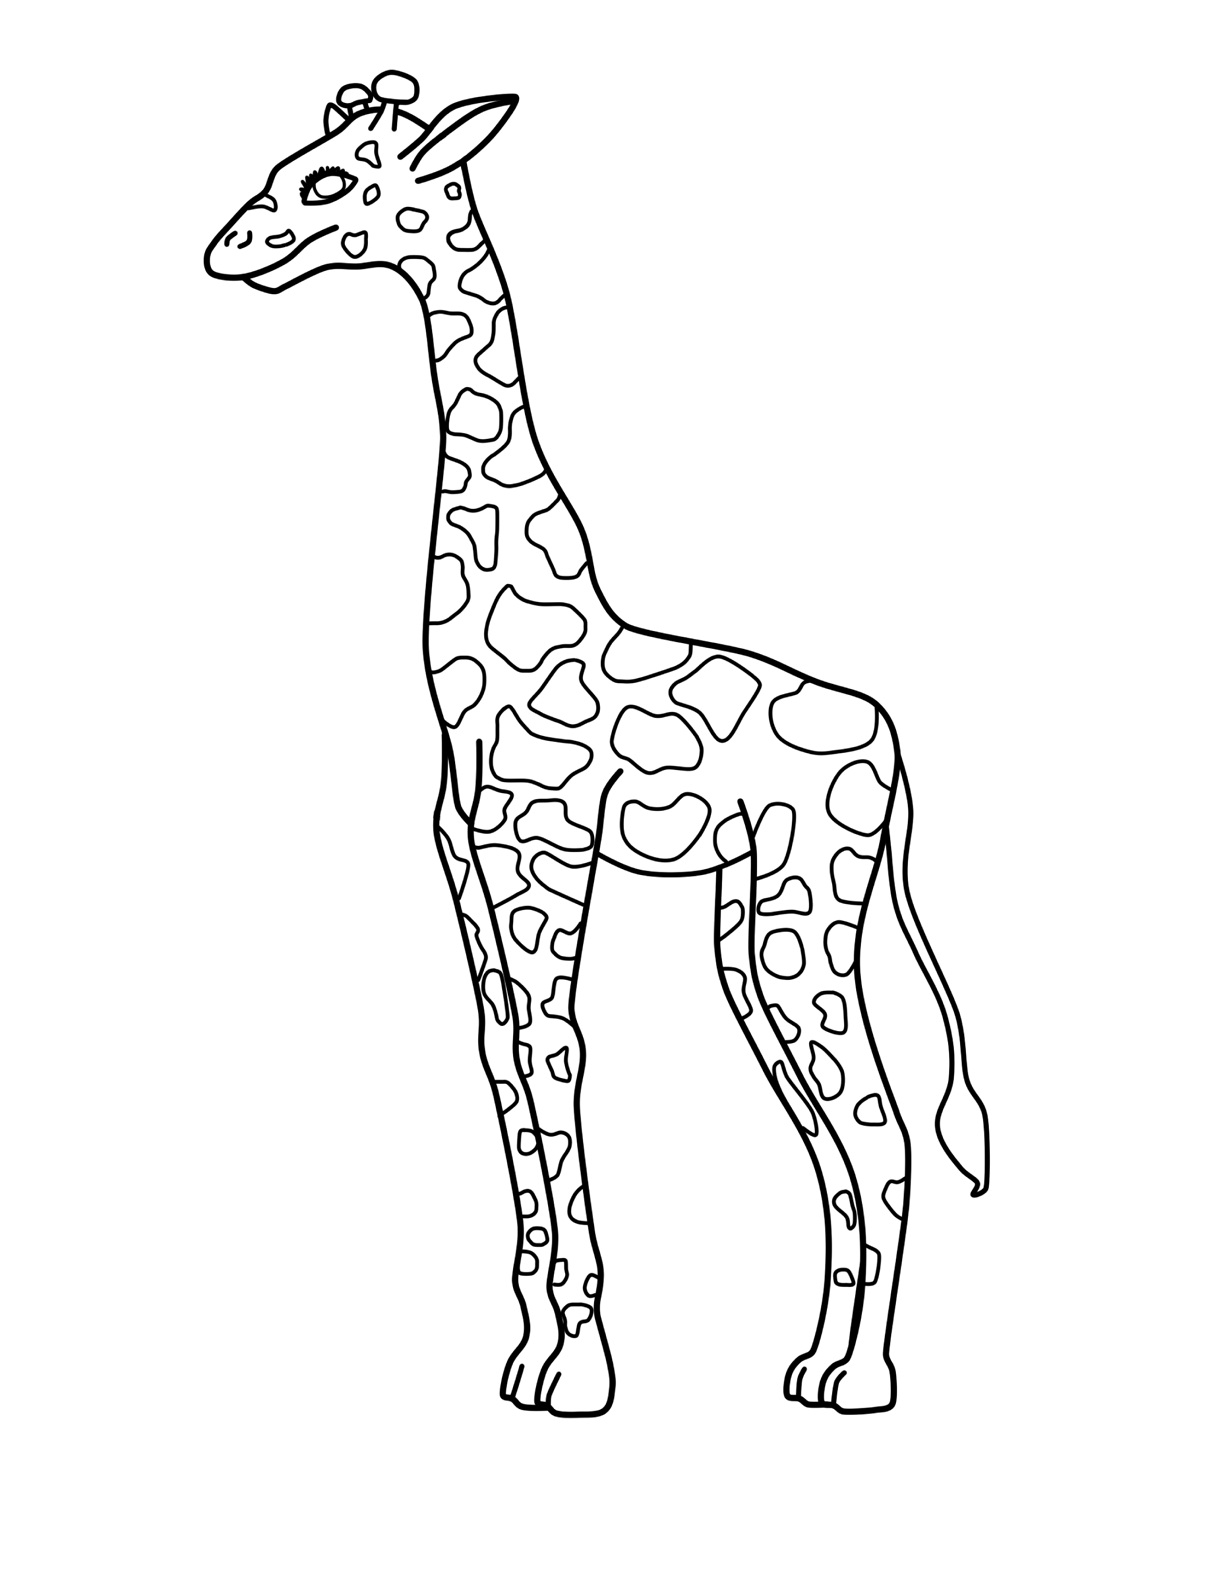 Free coloring pages giraffe - Free Printable Giraffe Coloring Pages For Kids